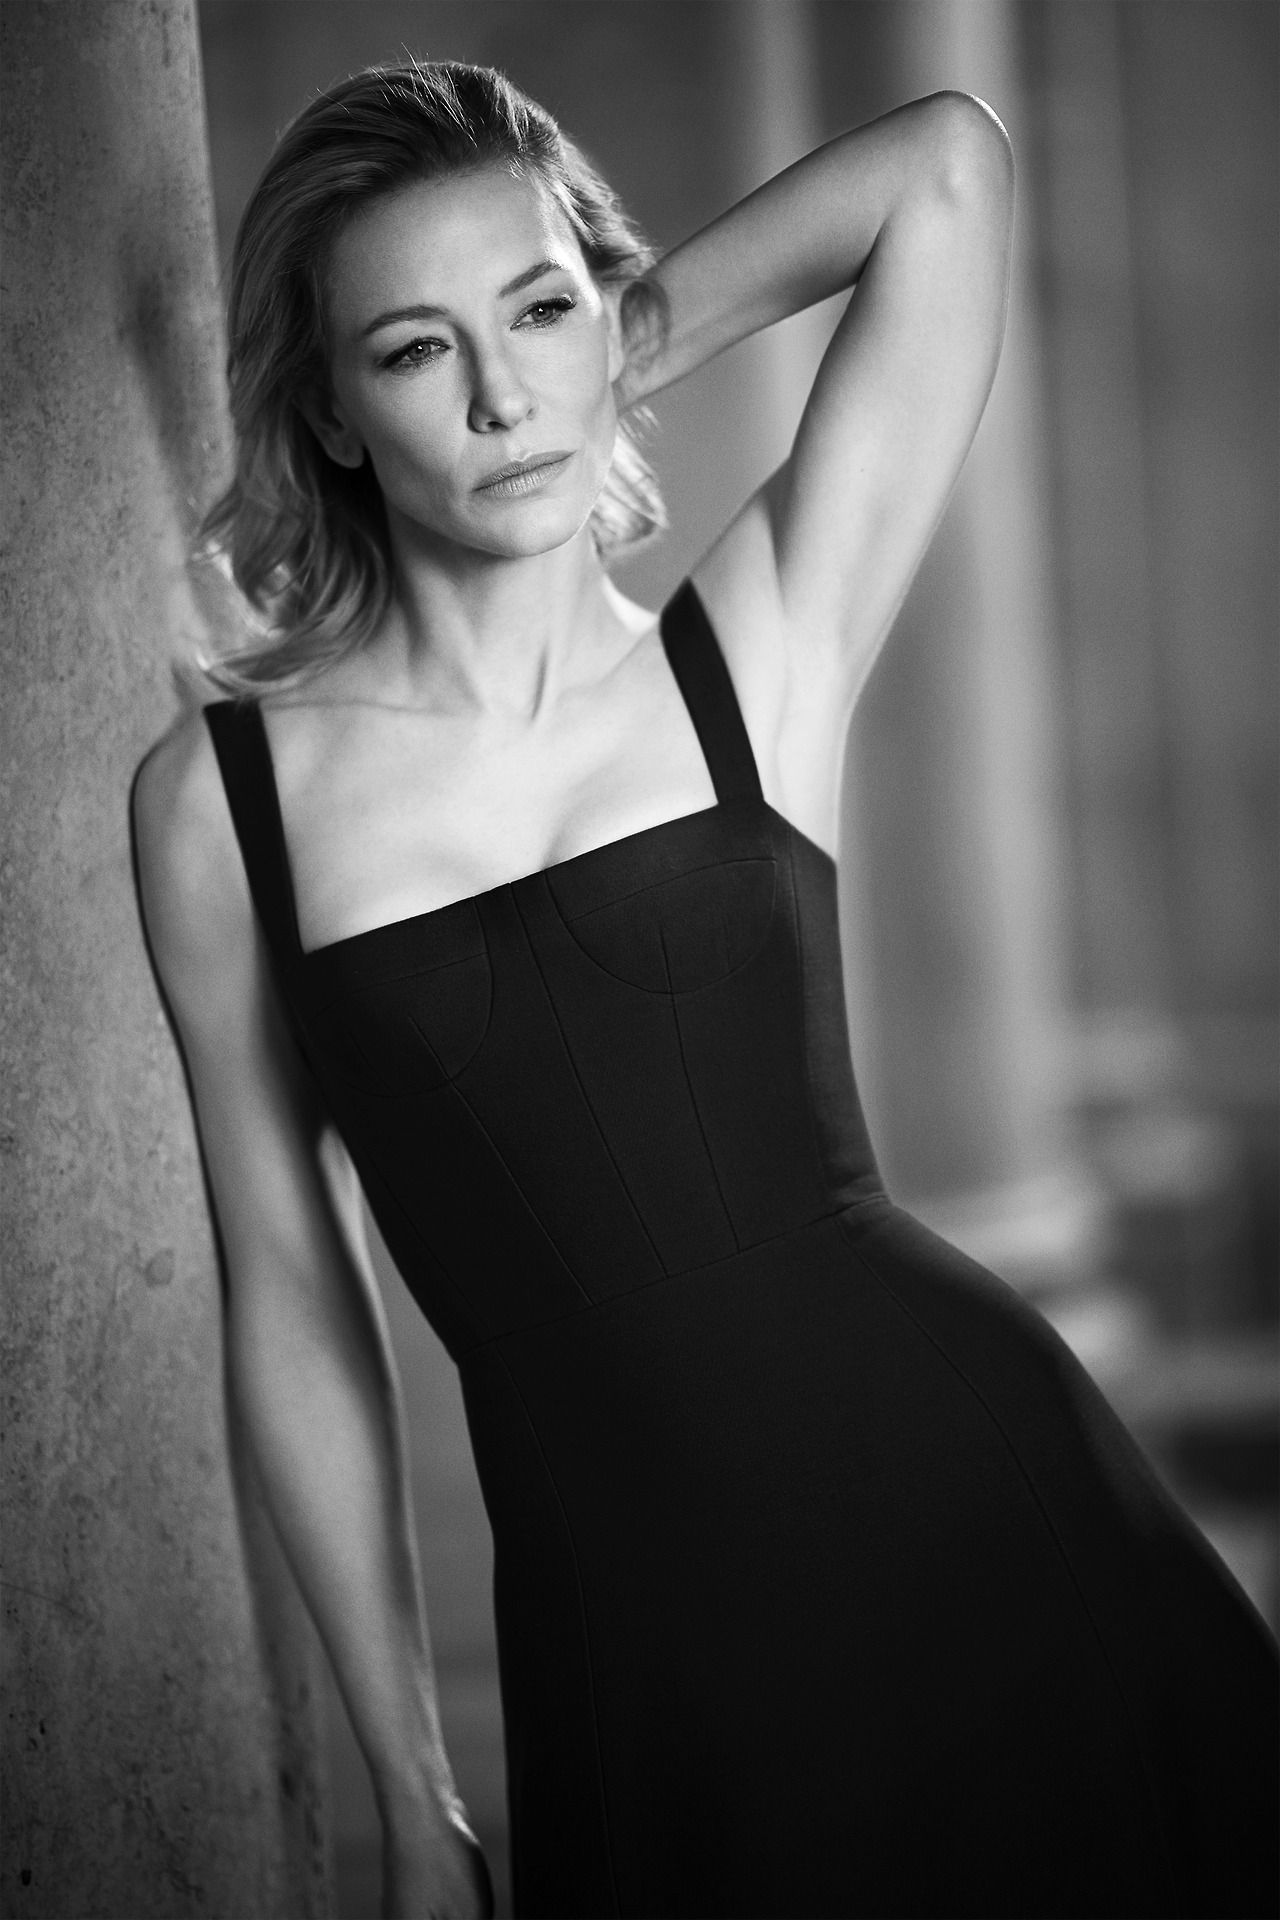 cate blanchett - photo #21